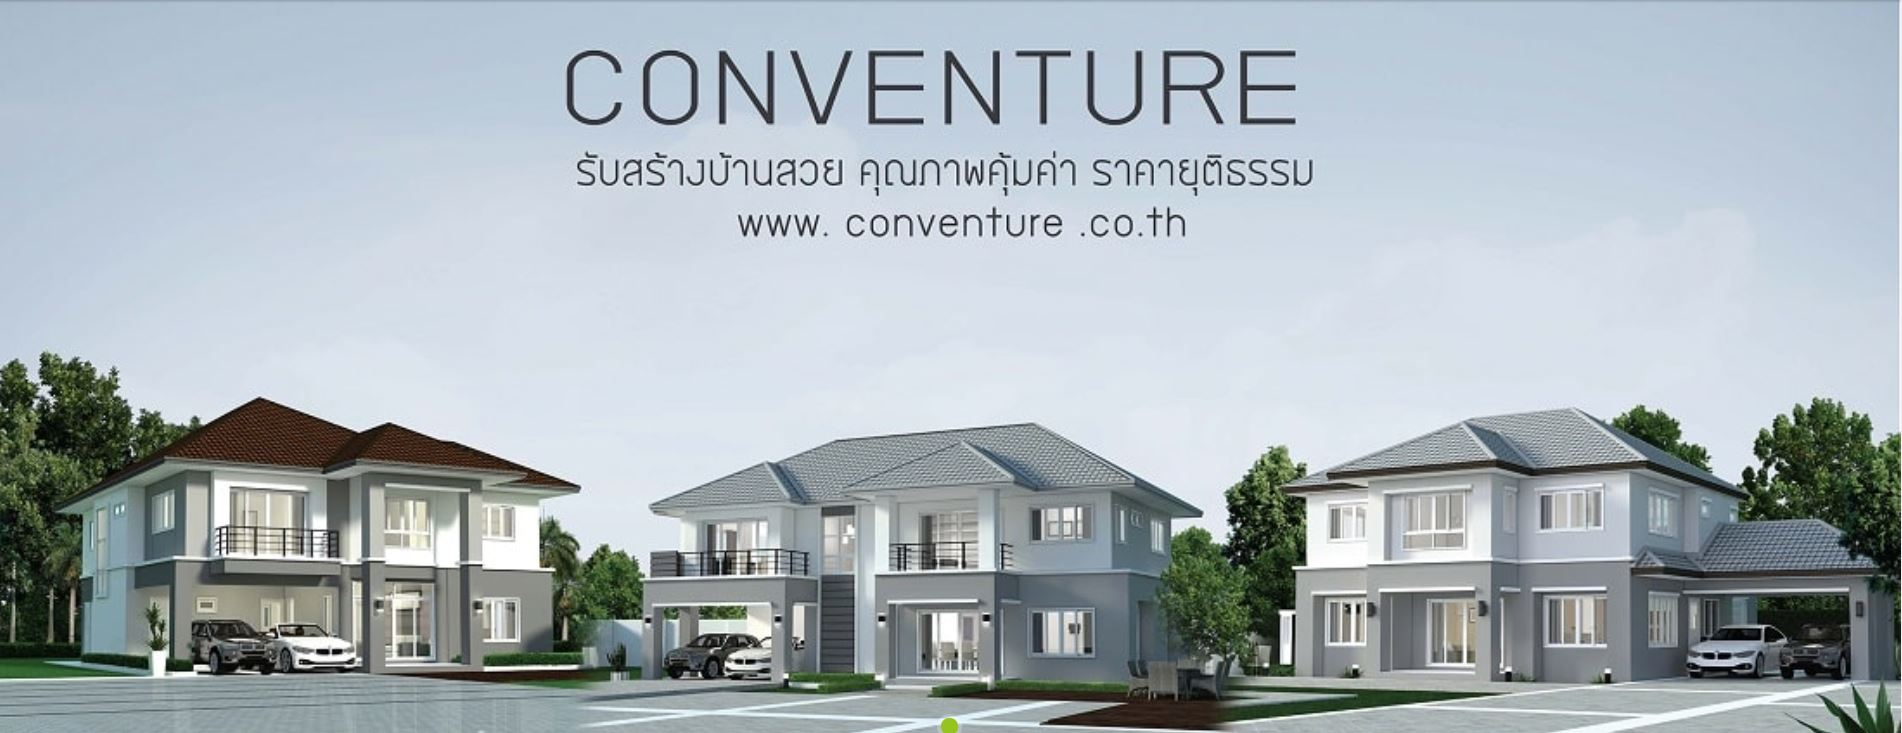 https://www.conventure.co.th/